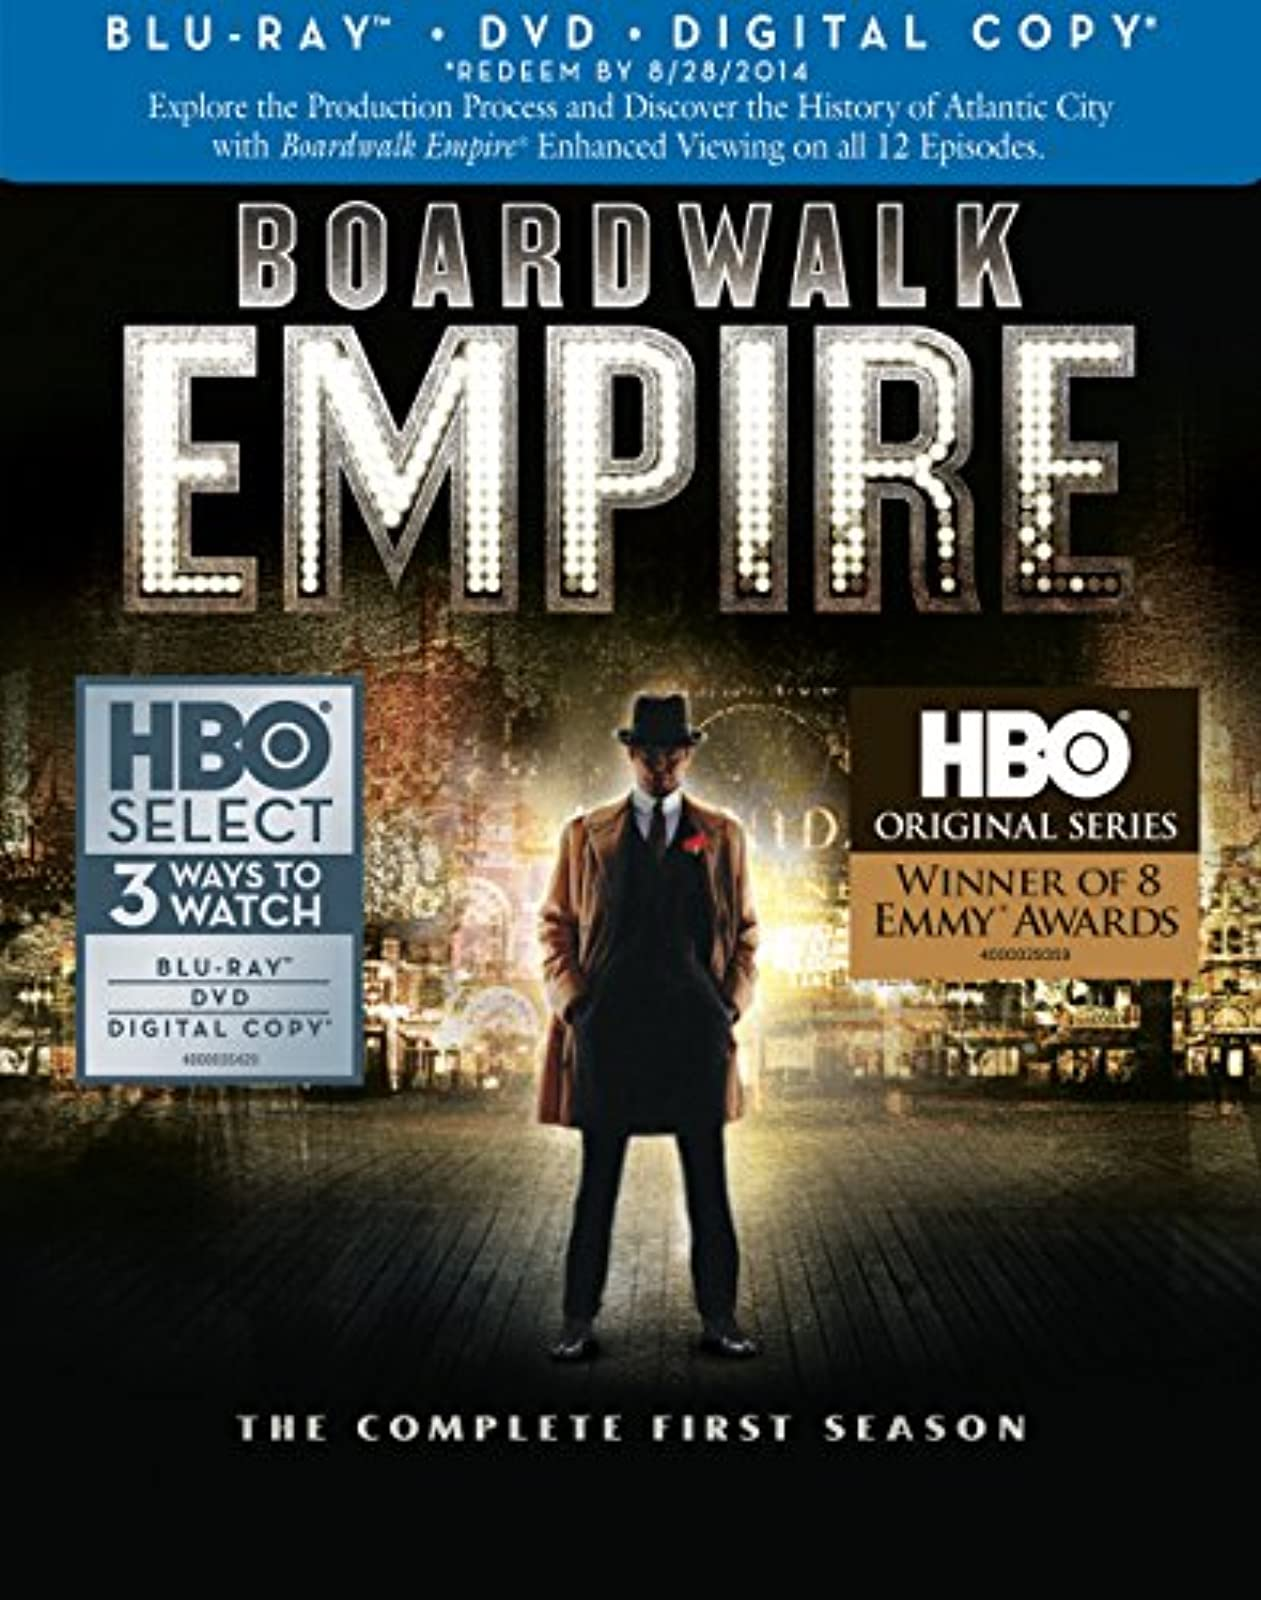 Boardwalk Empire: Complete First Season Combo On Blu-Ray With Steve Buscemi Dram